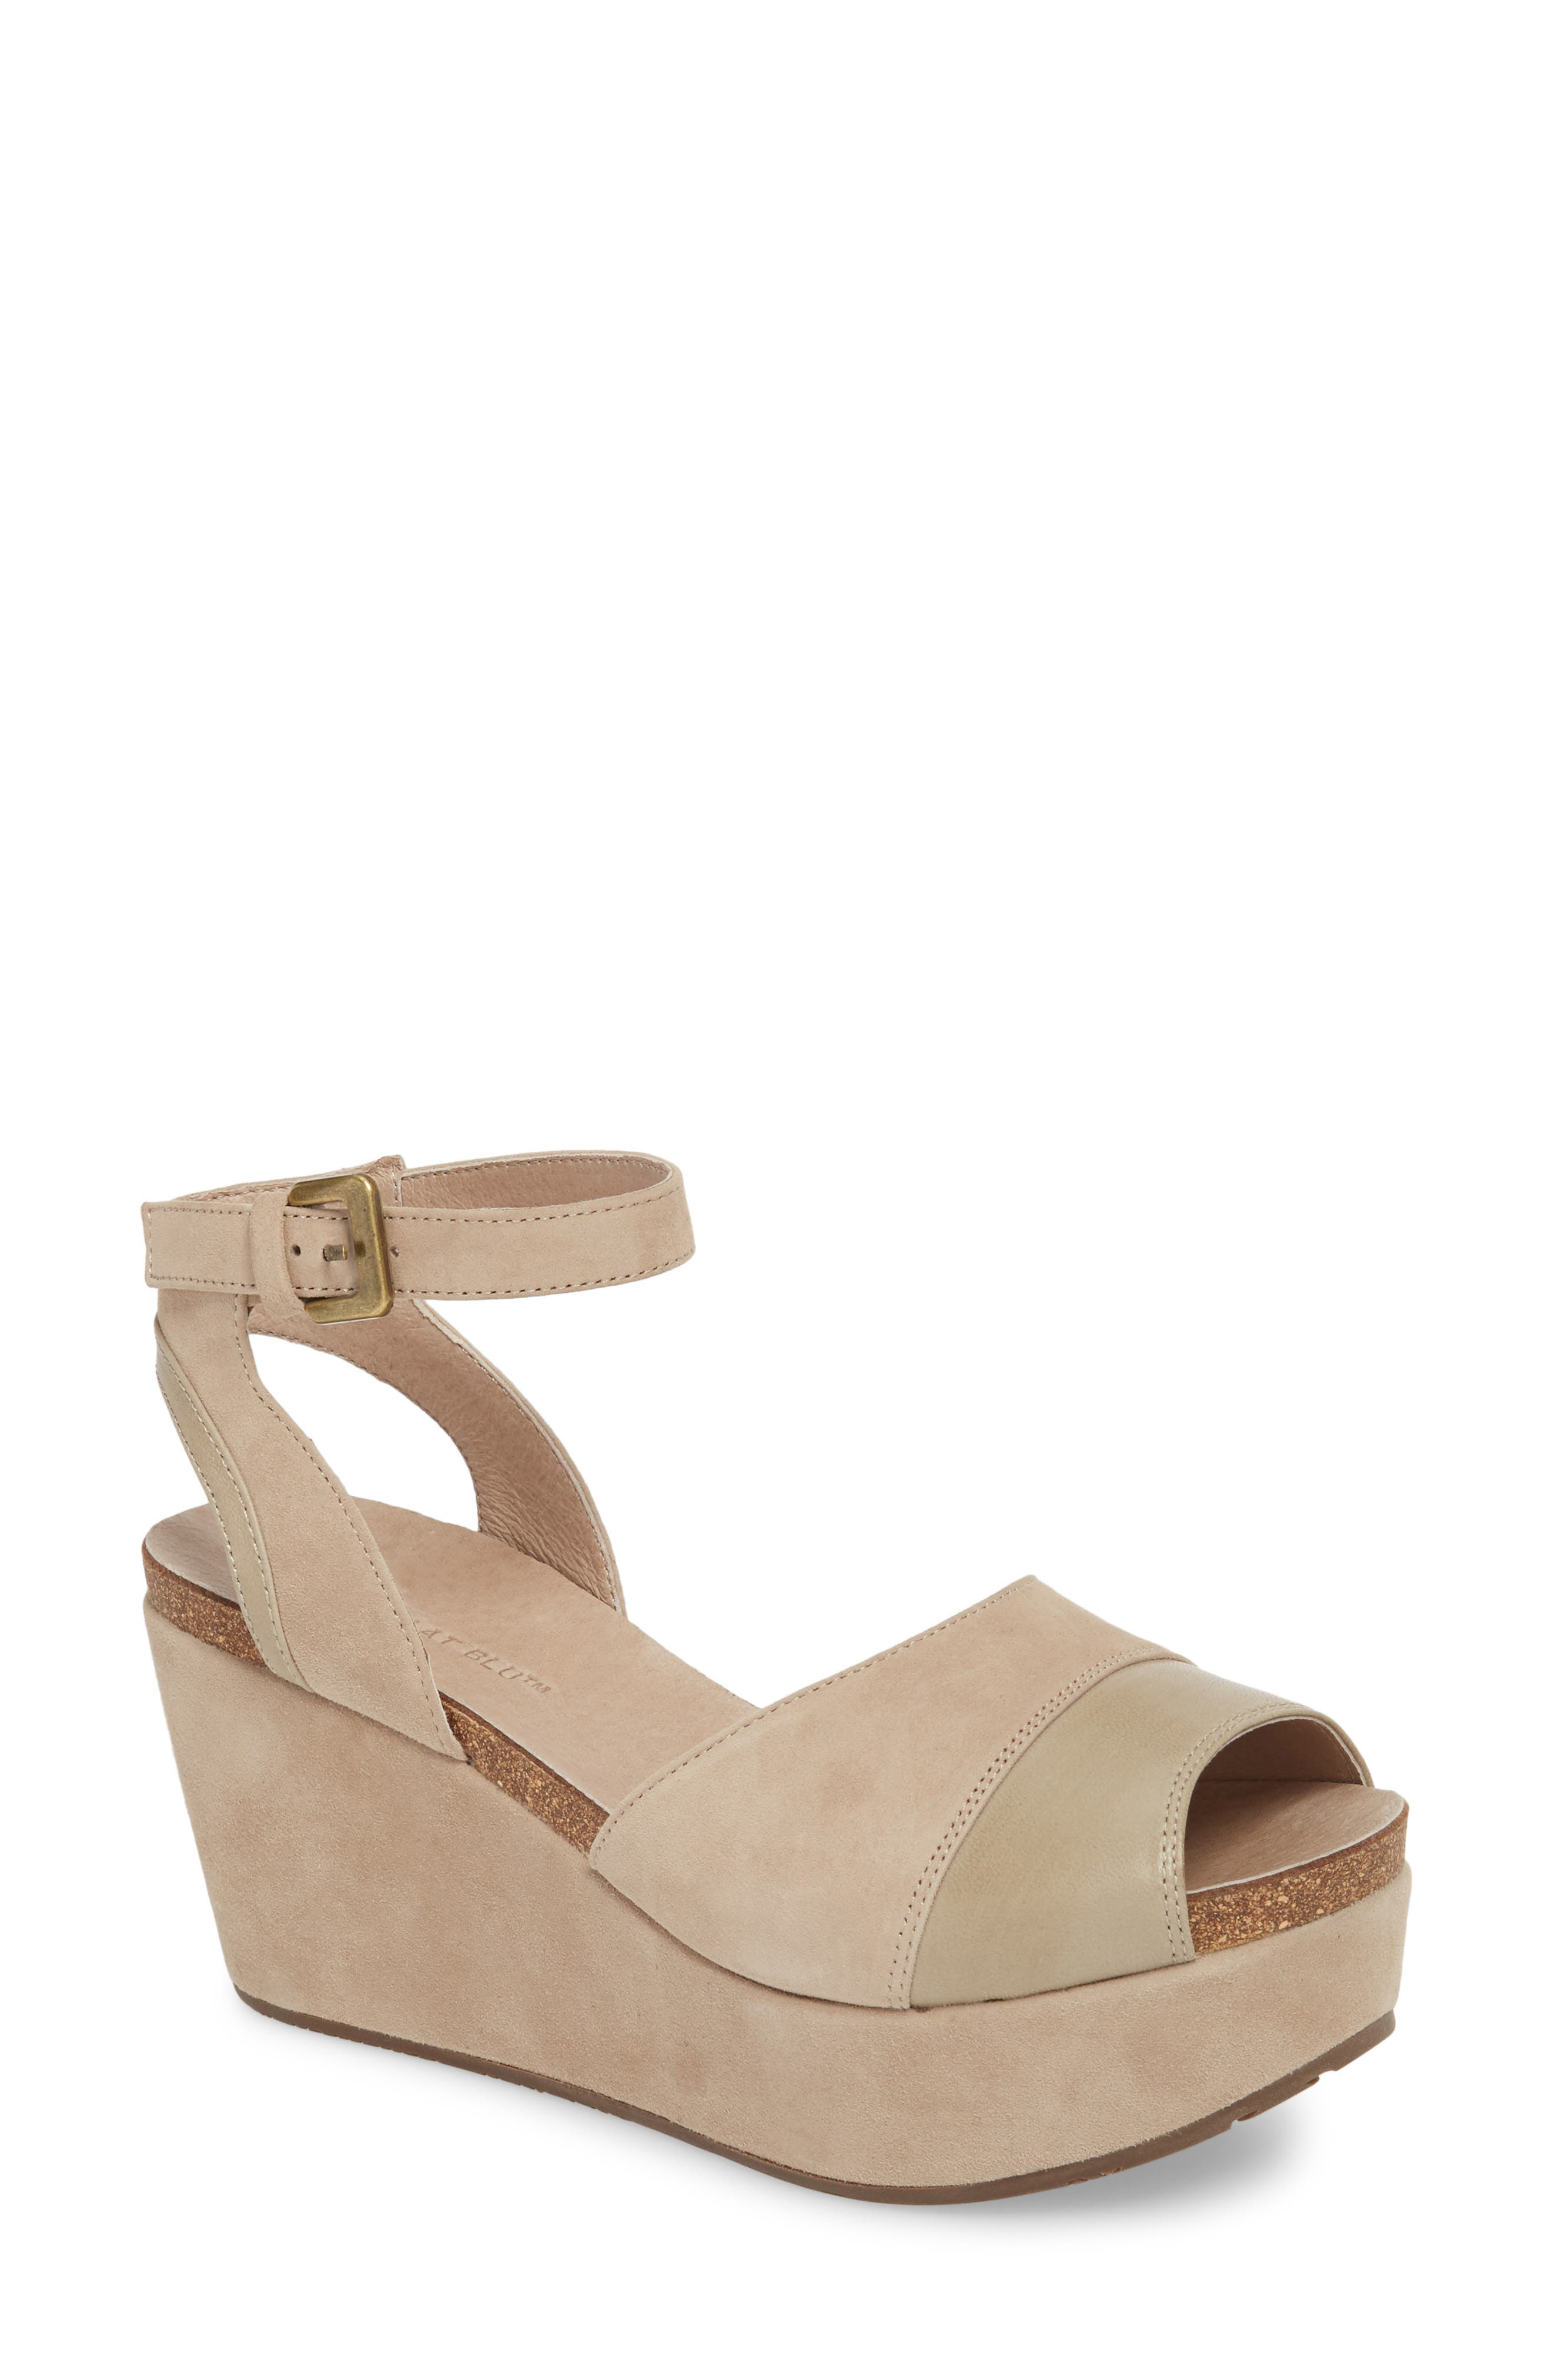 Chocolate Blu Welby Ankle Strap Wedge Sandal,                             Main thumbnail 1, color,                             TAUPE SUEDE